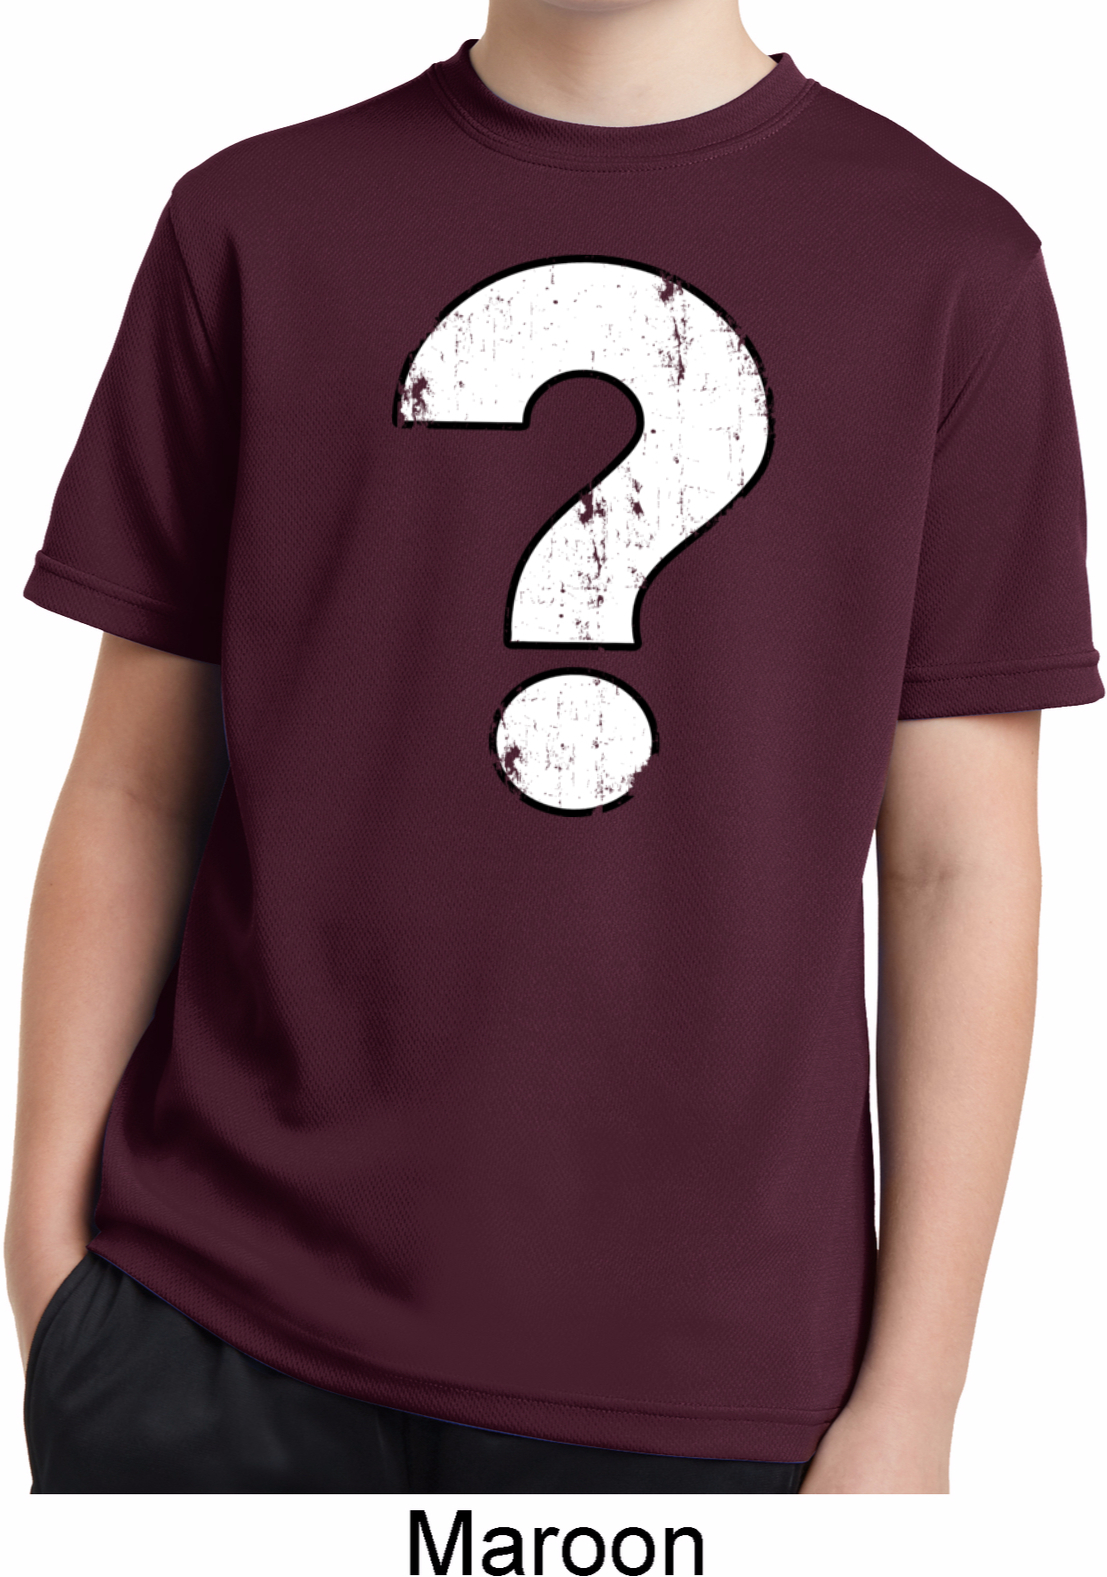 Kids distressed question moisture wicking shirt for Moisture wicking dress shirts